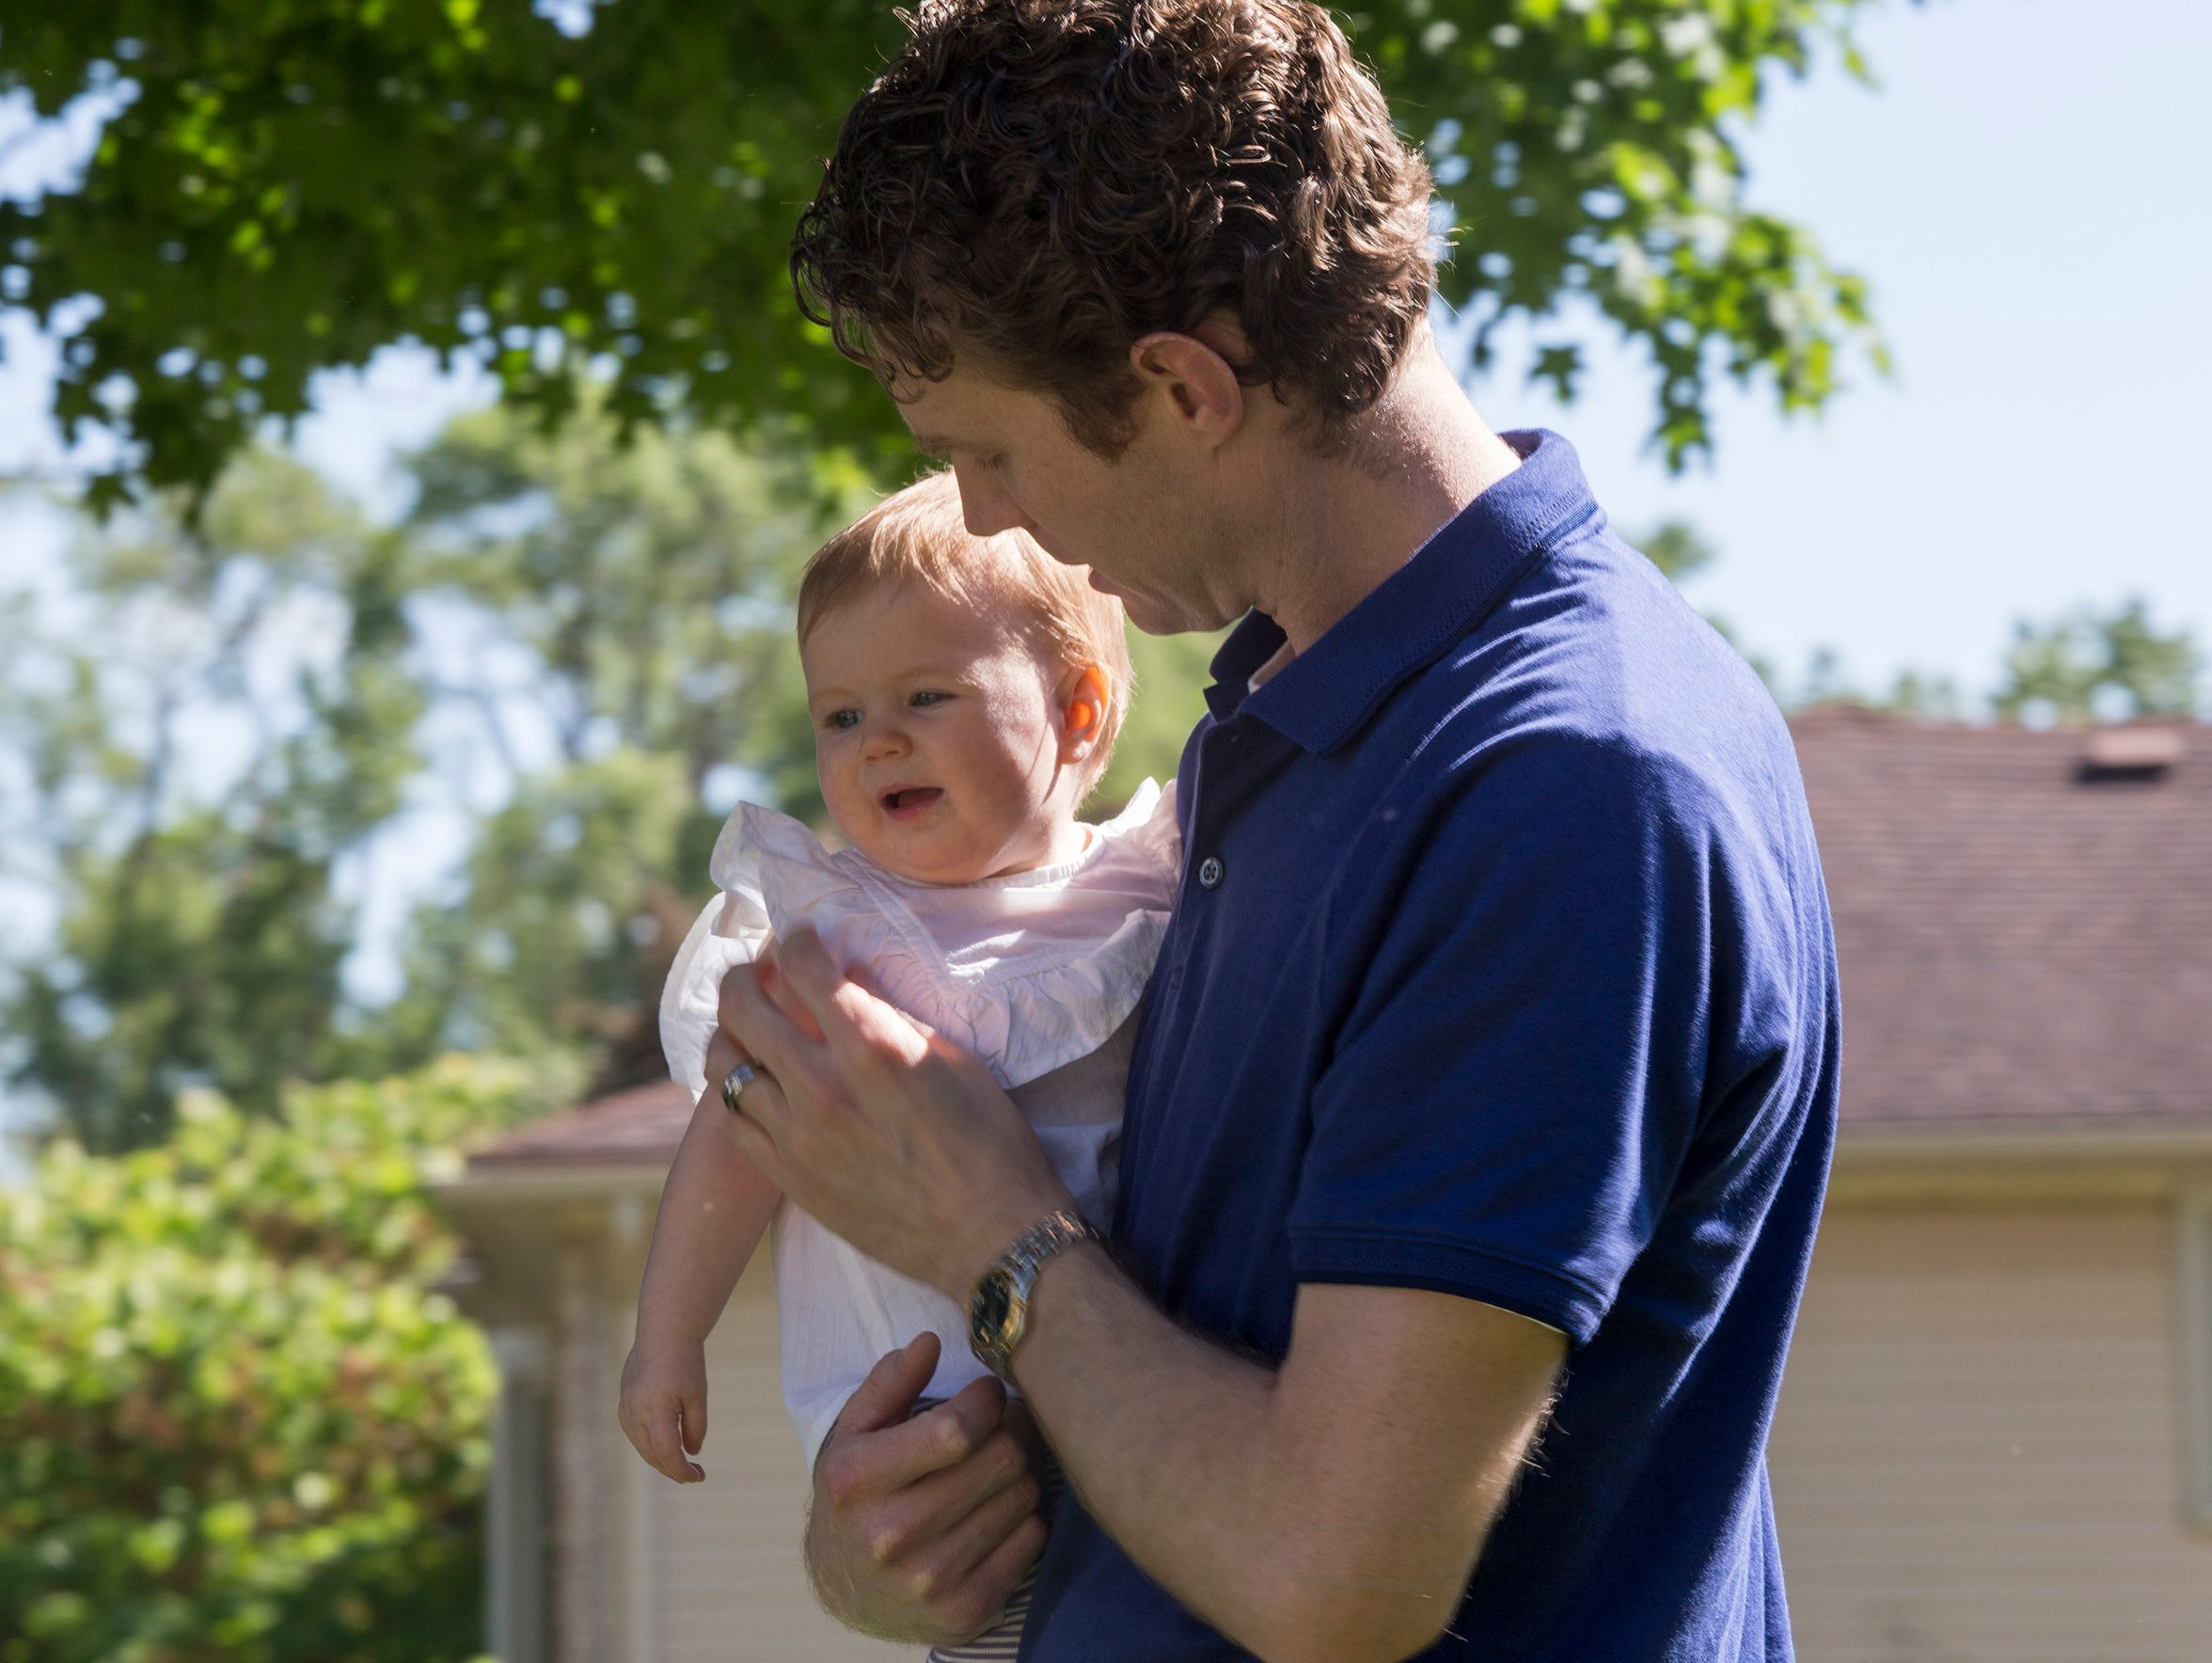 Phil Guster holds his 7-month-old daughter, Amelia